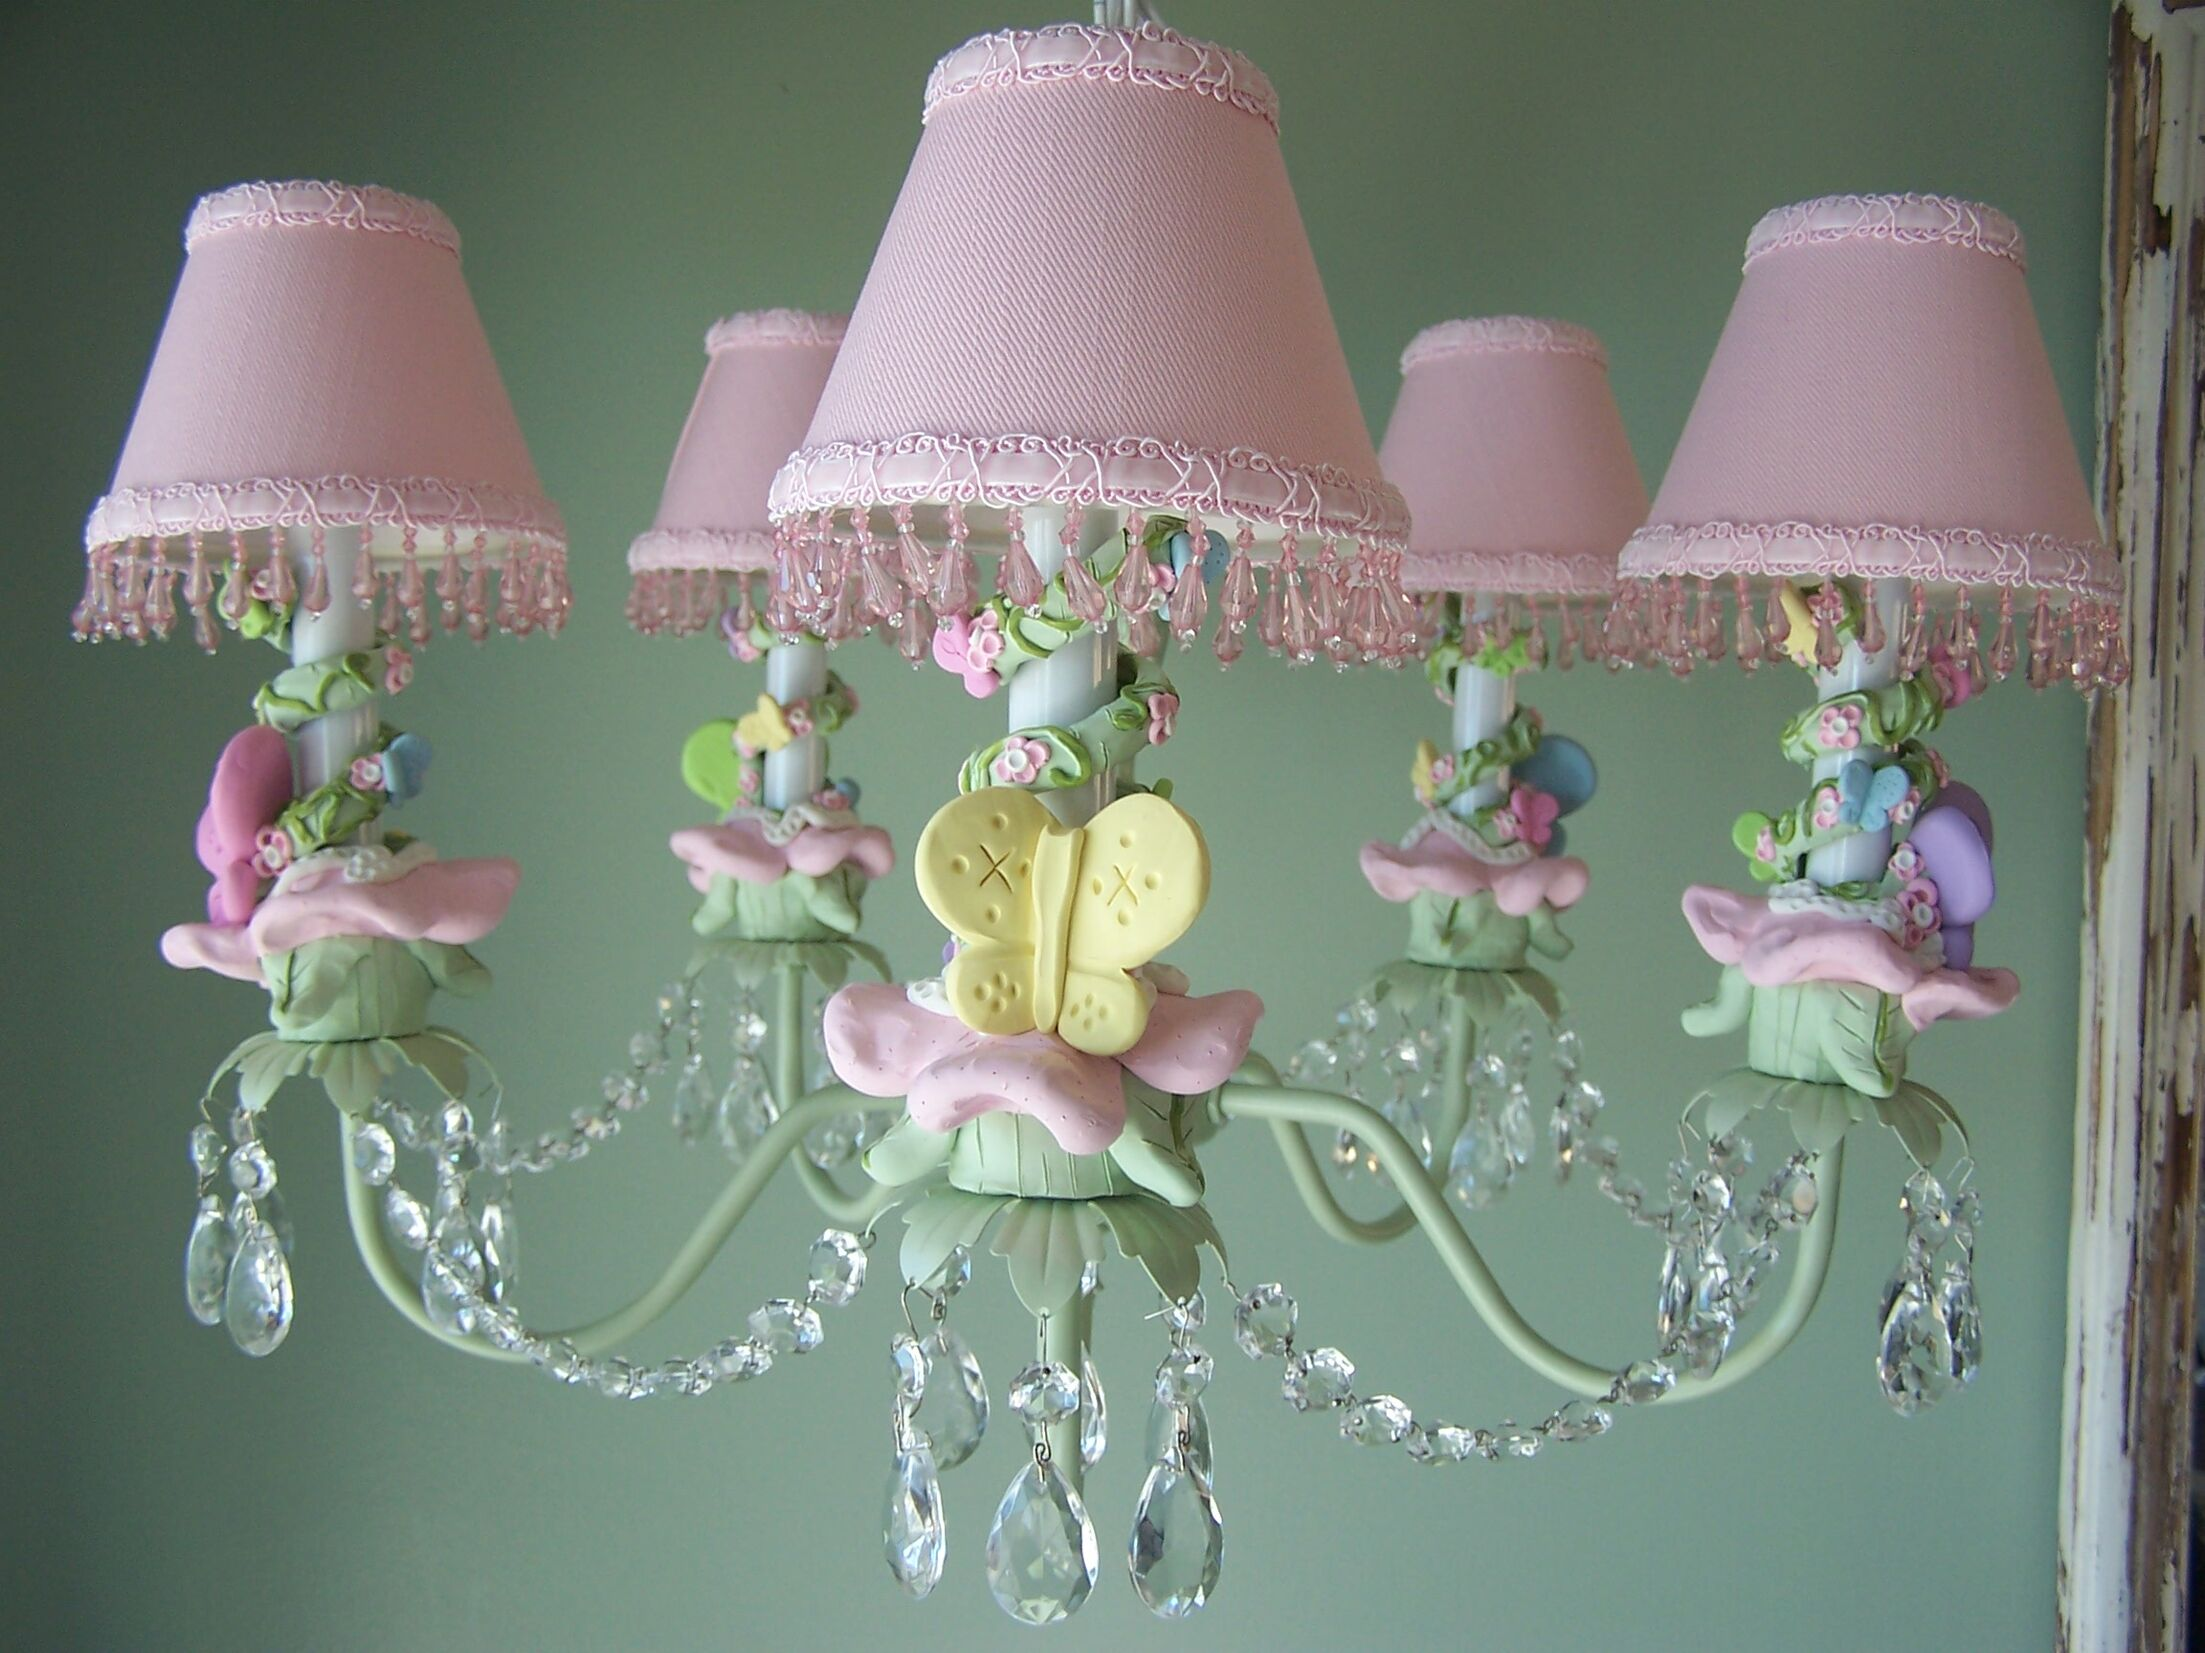 Pastel Climbing Vine Butterfly 5-Light Shaded Chandelier Shade: Pixie Wish